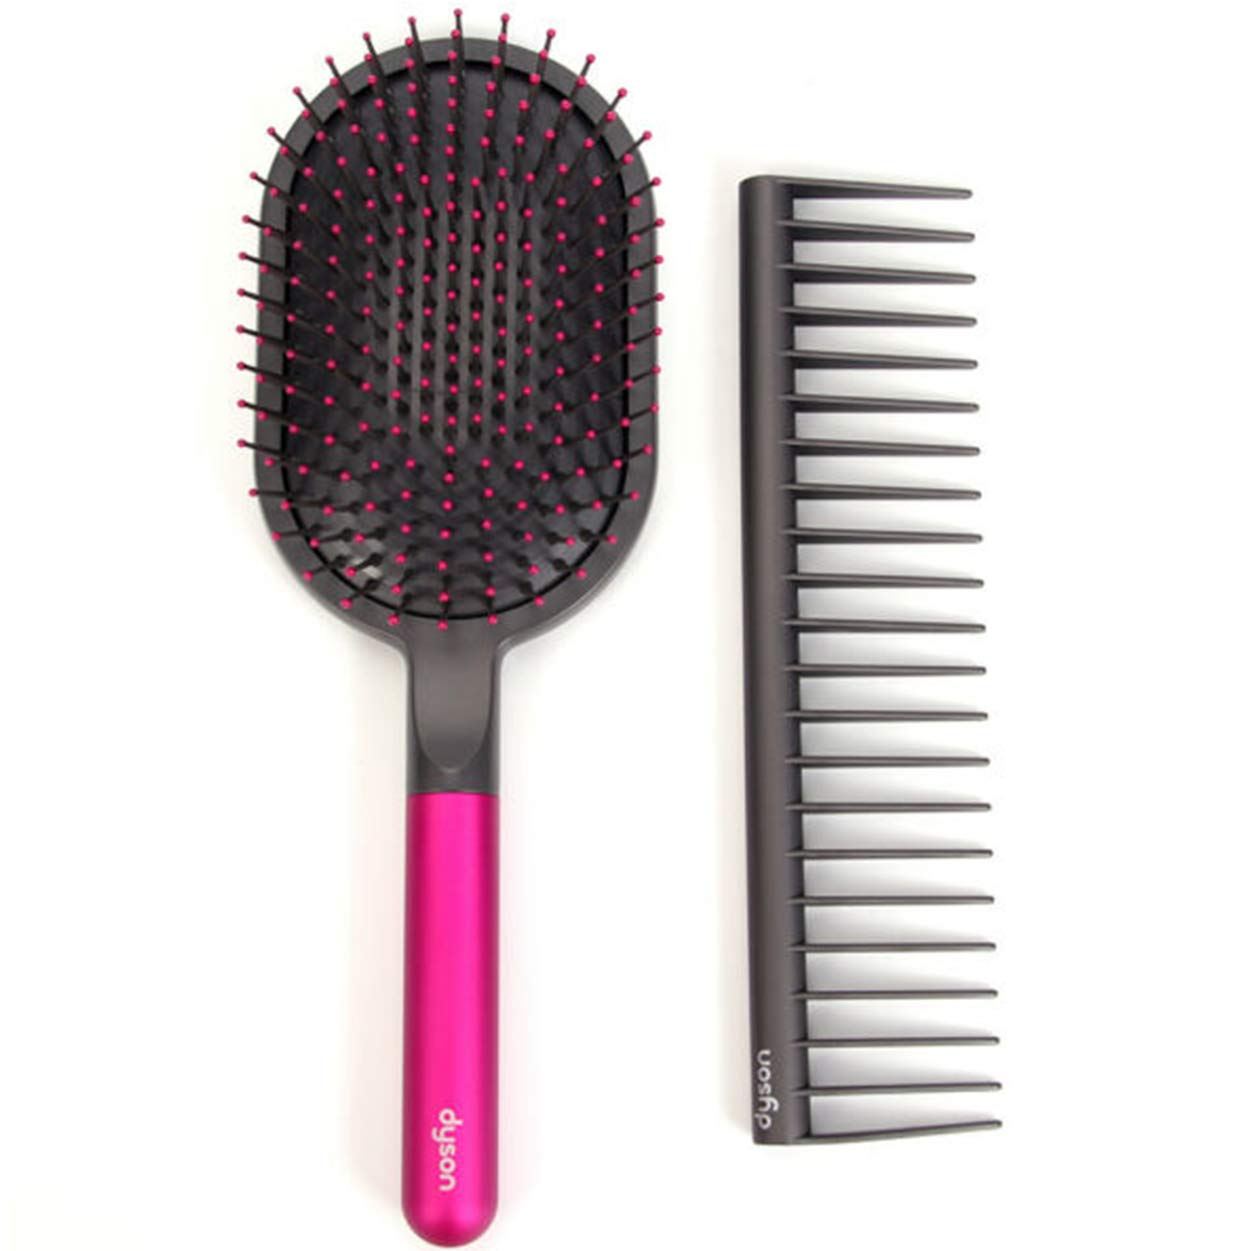 Dyson Designed Detangling Comb and Paddle Brush Supersonic Hair Dryer by Dyson